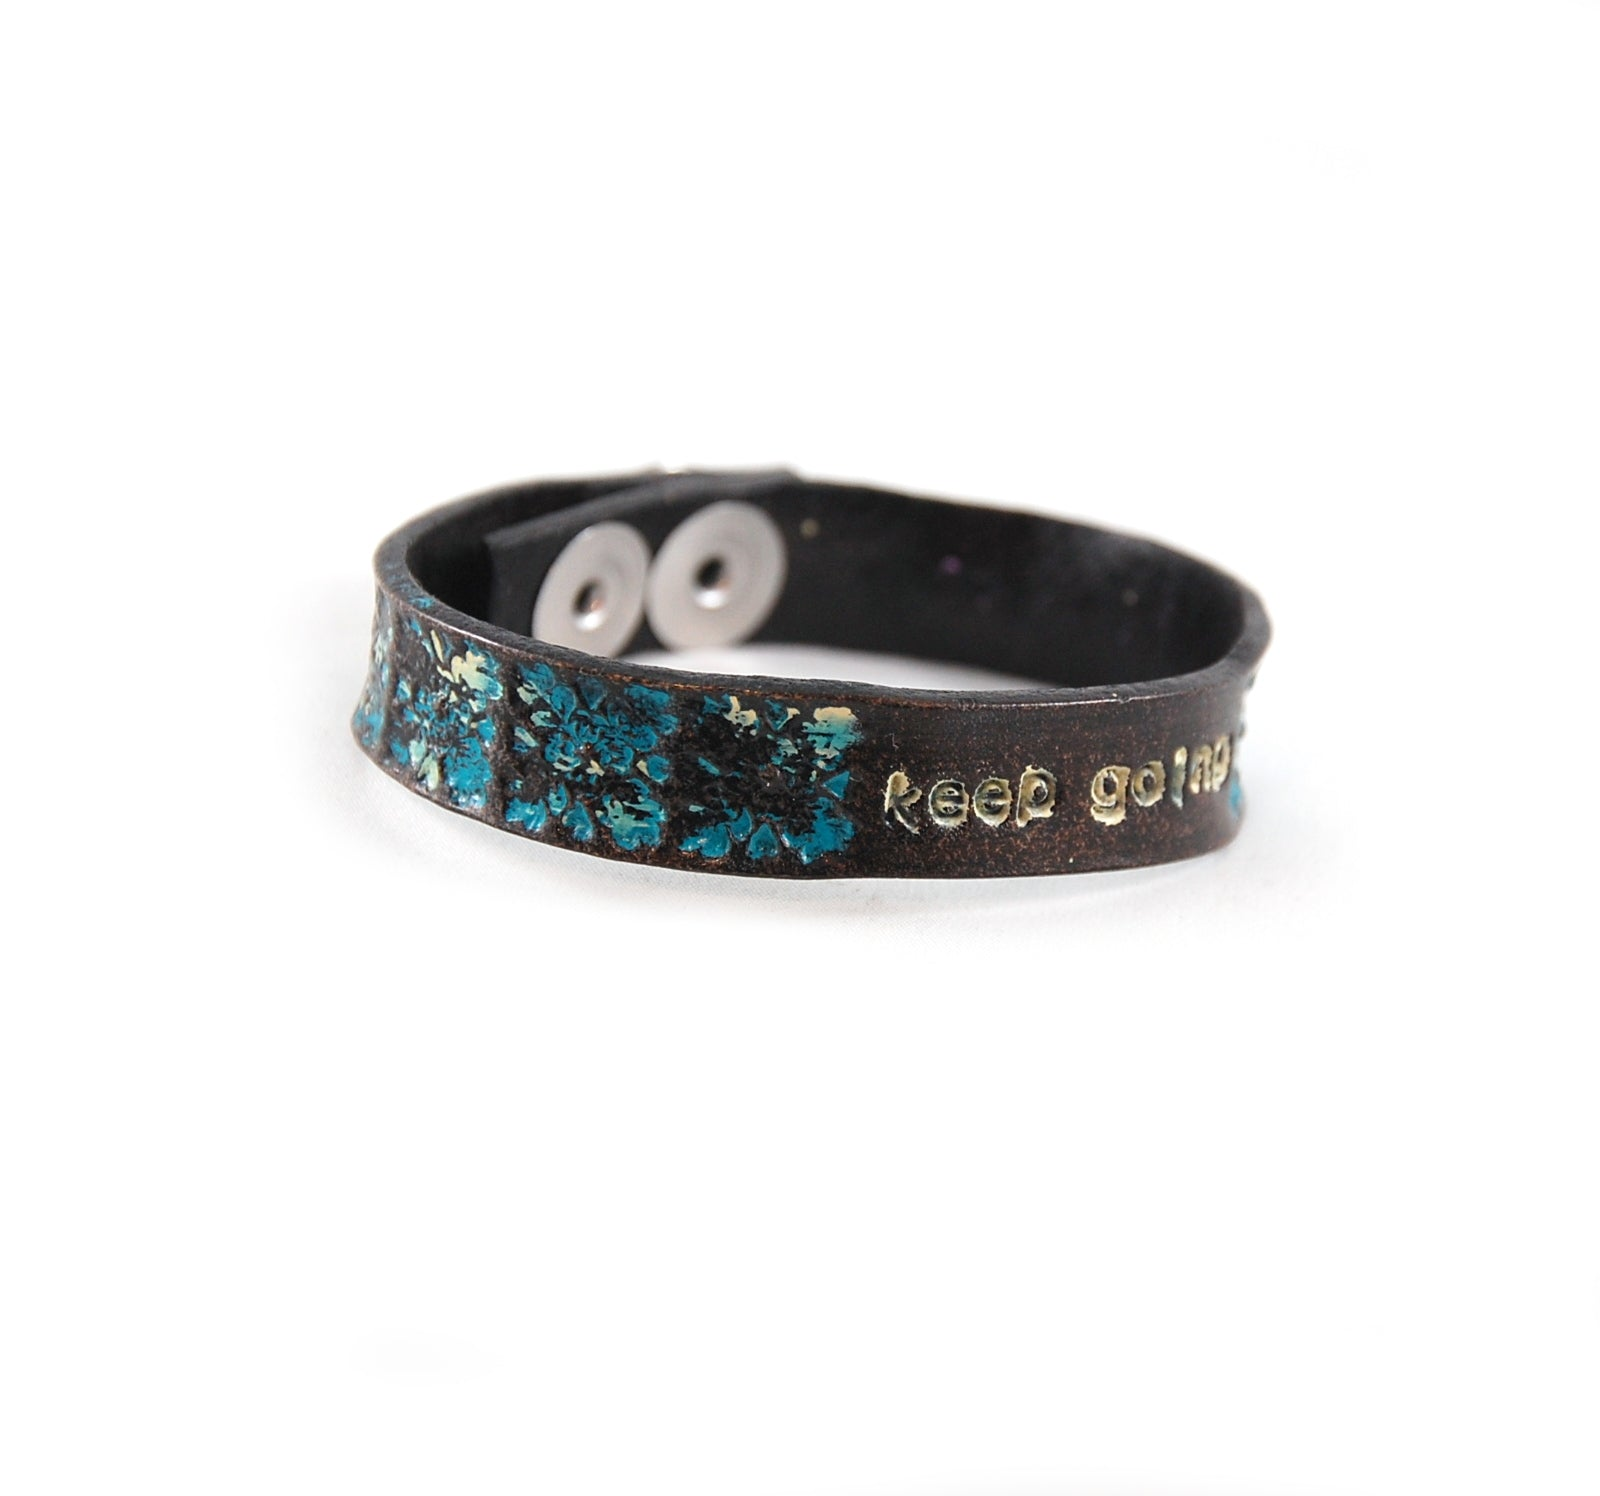 SF3 - Stamped Flower Leather Bracelet 'Keep Going' - Fearless hART